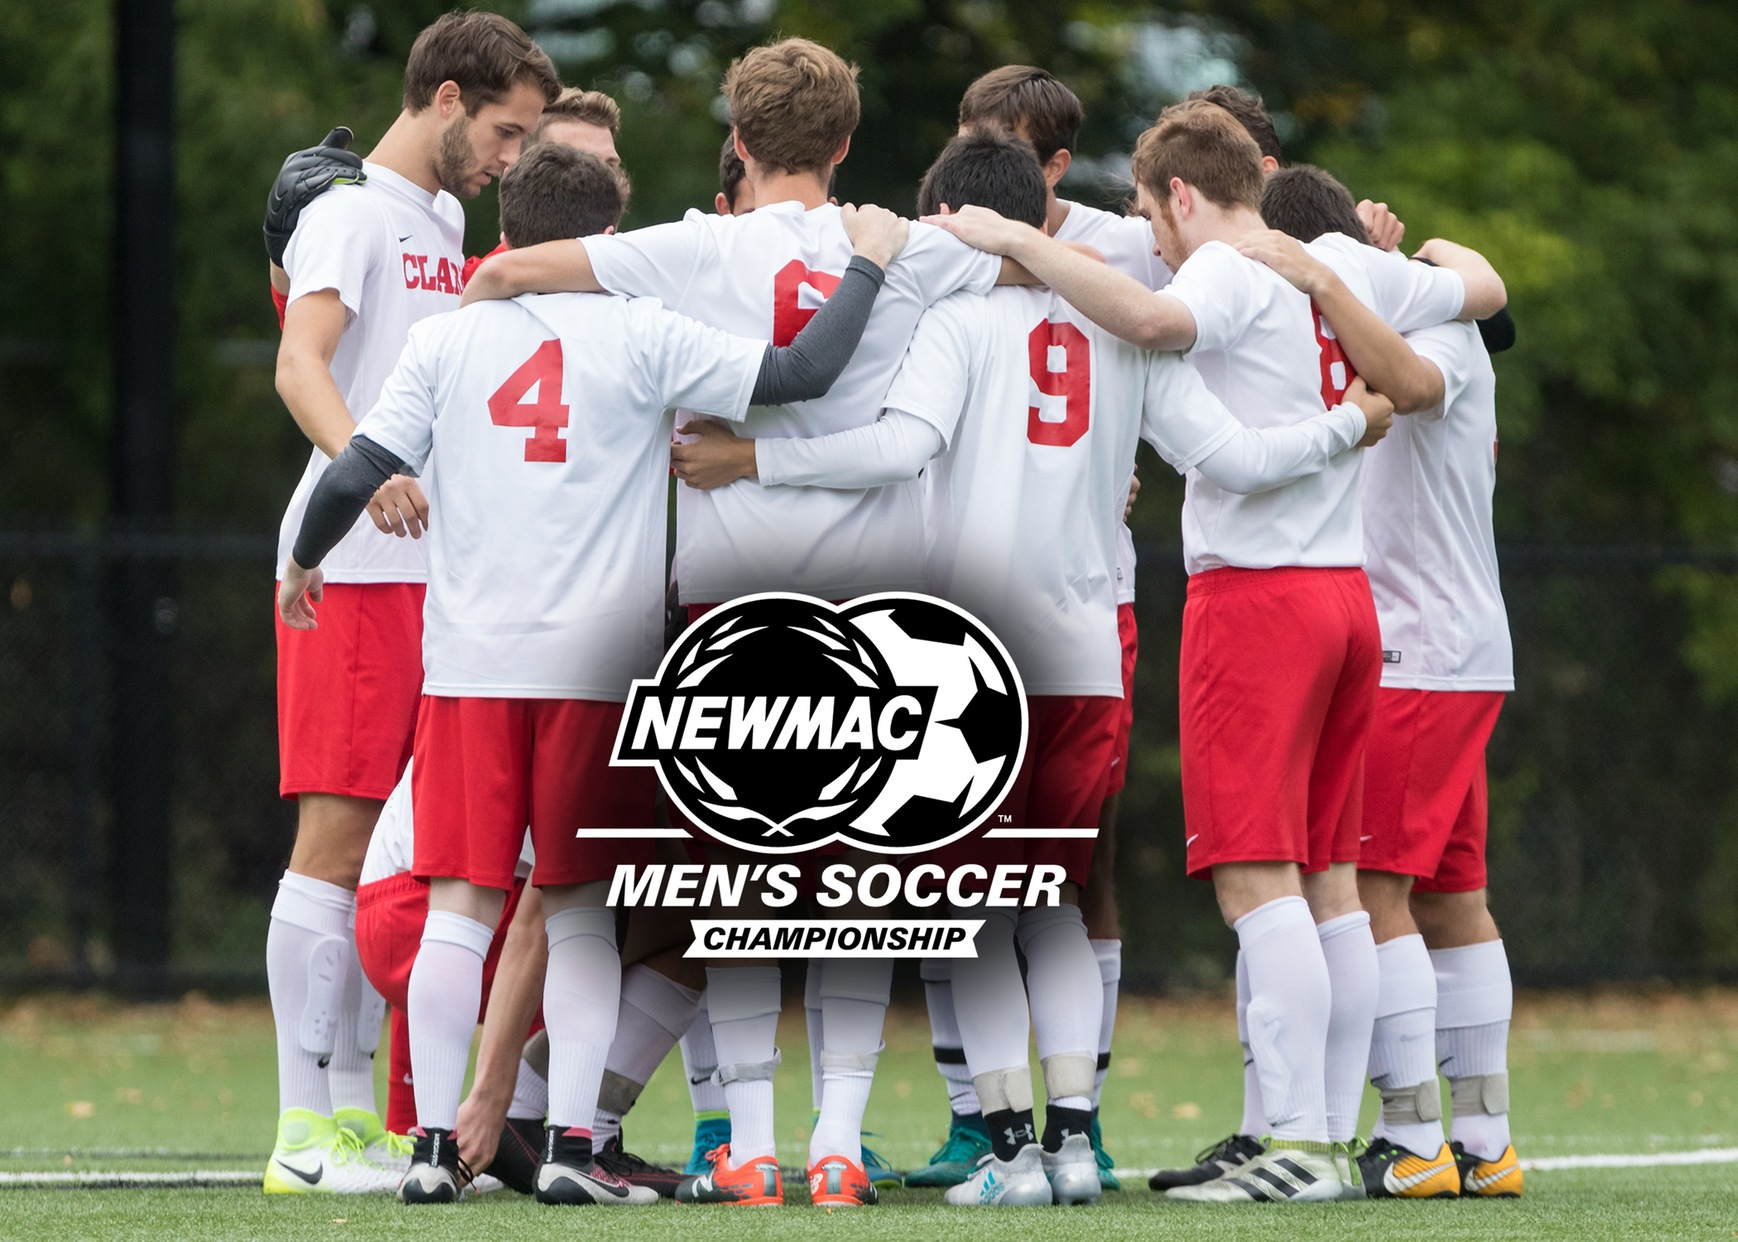 NEWMAC Quarterfinal Preview: No. 4 Men's Soccer Hosts No. 5 MIT